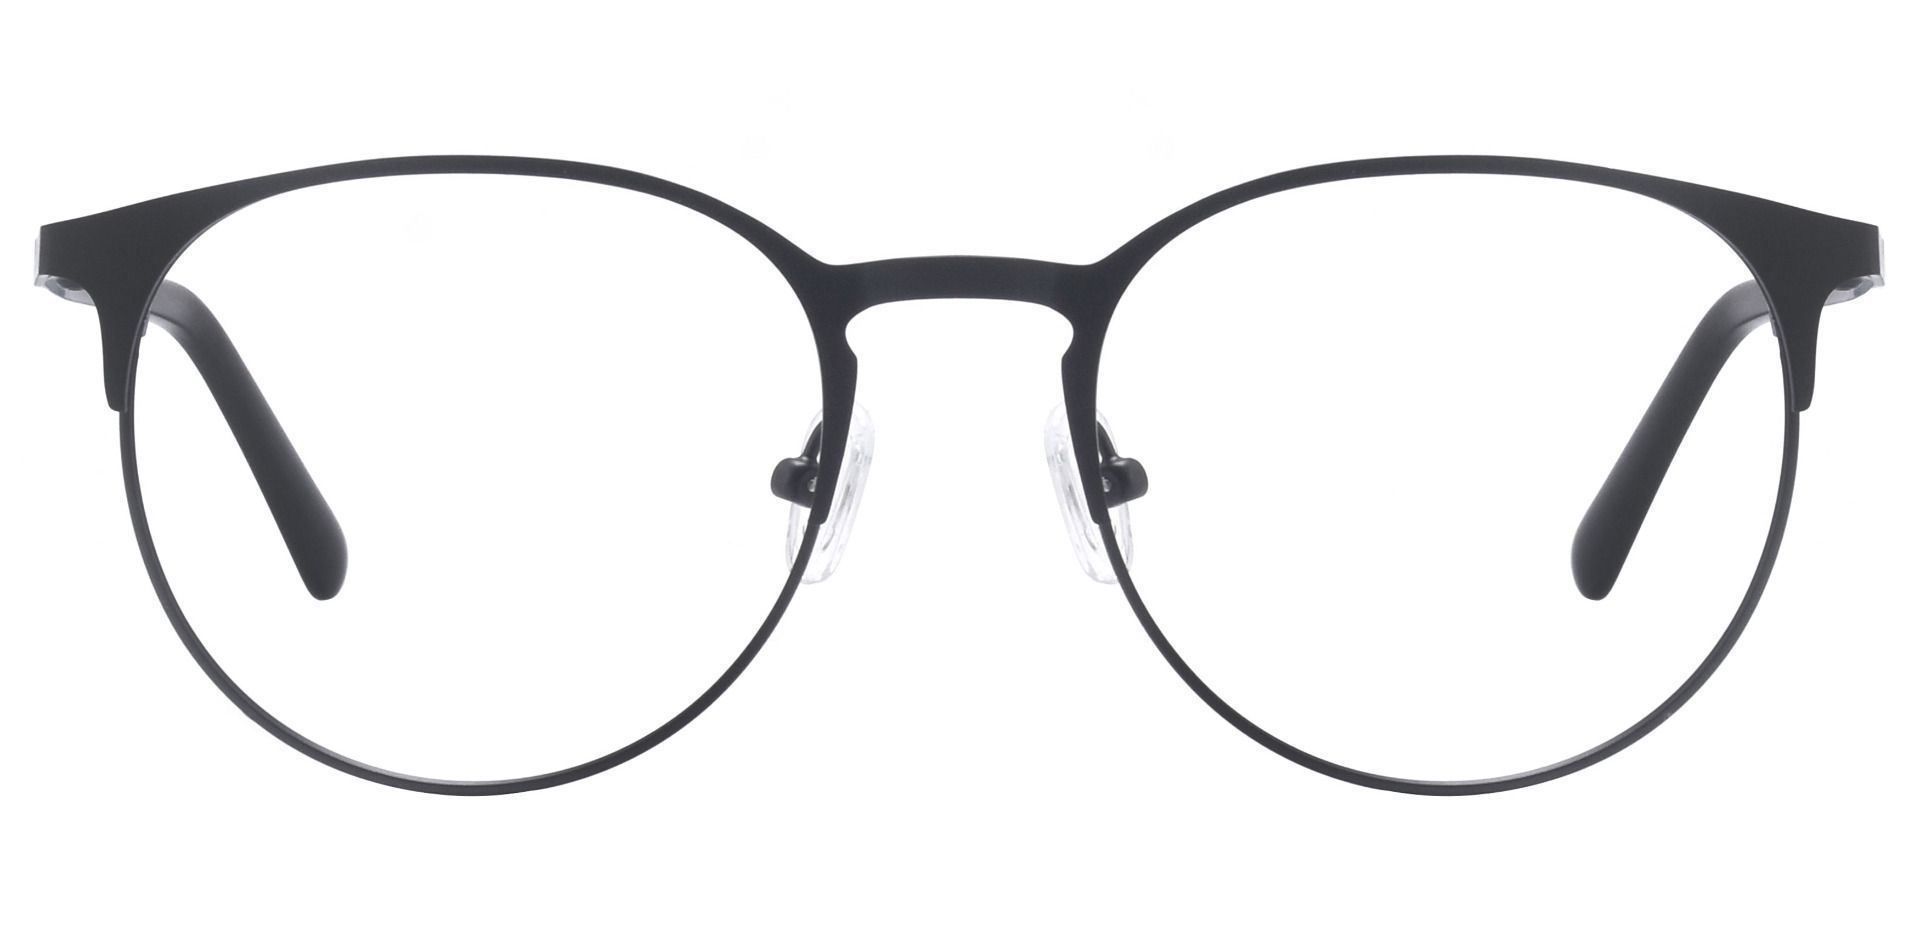 Dawn Oval Prescription Glasses - Matte Black